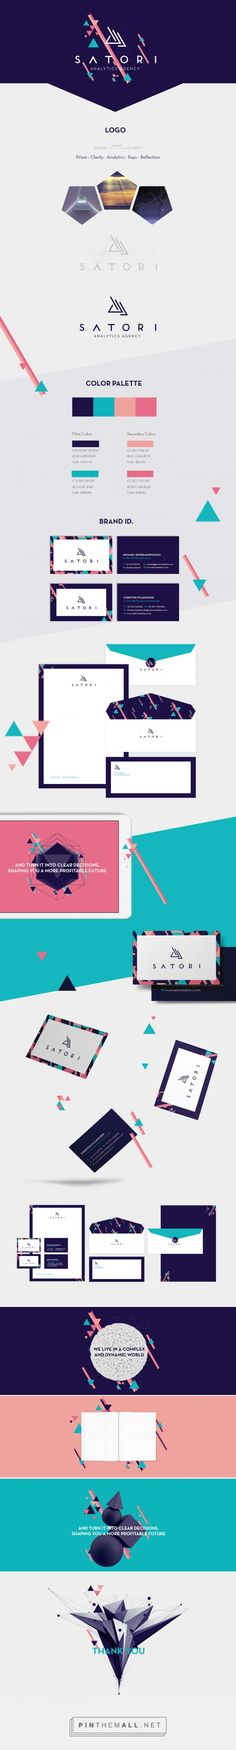 Satori Analytics Agency Branding on Behance | Fivestar Branding – Design and Branding Agency & Inspiration Gallery